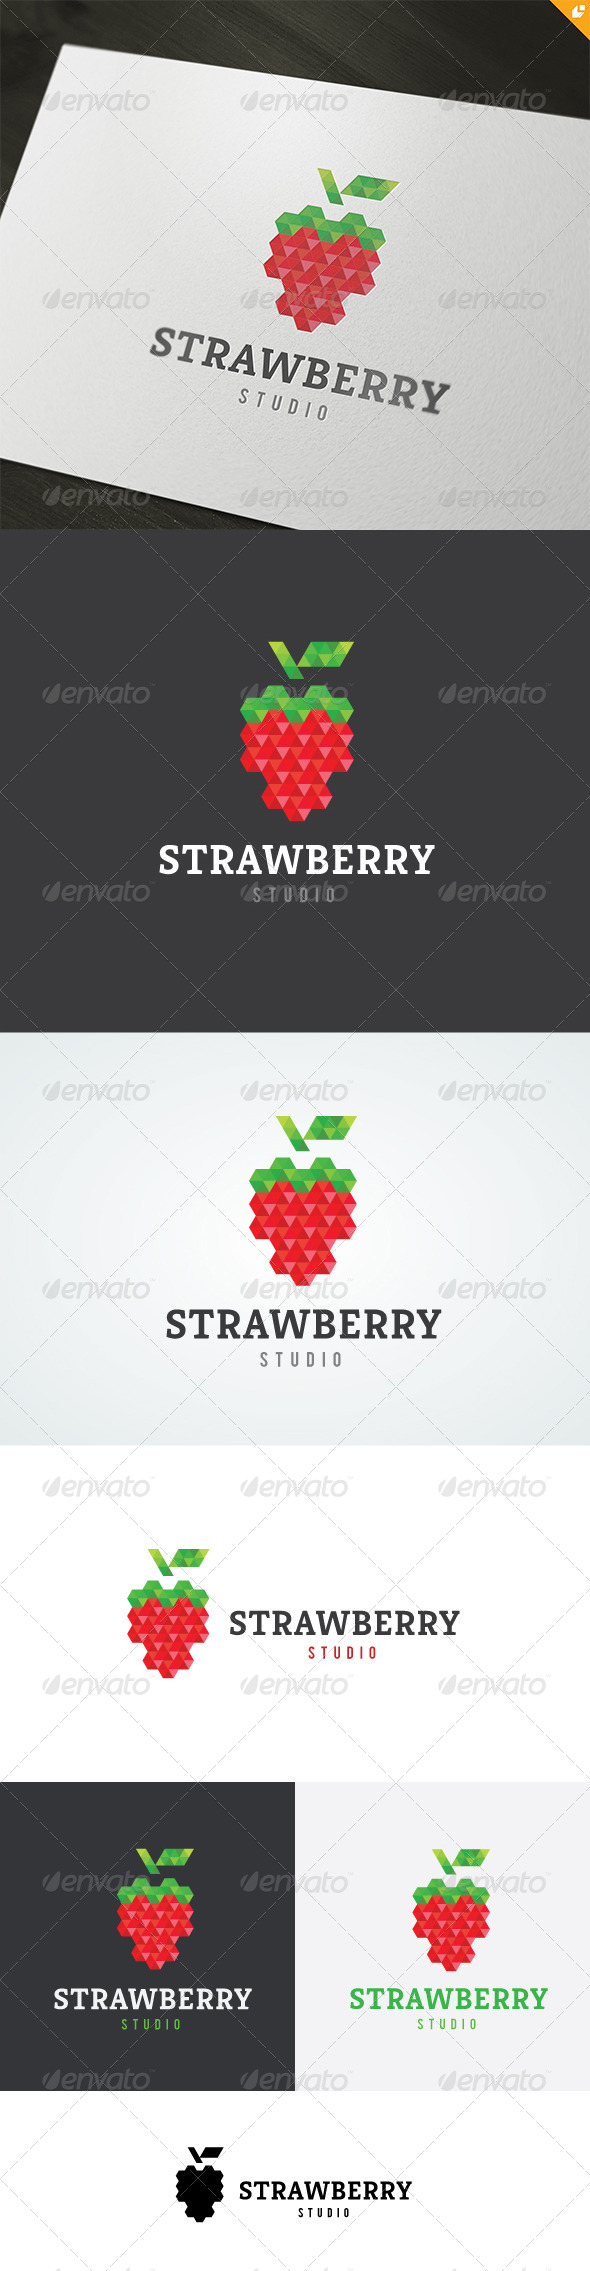 Strawberry Studio Logo